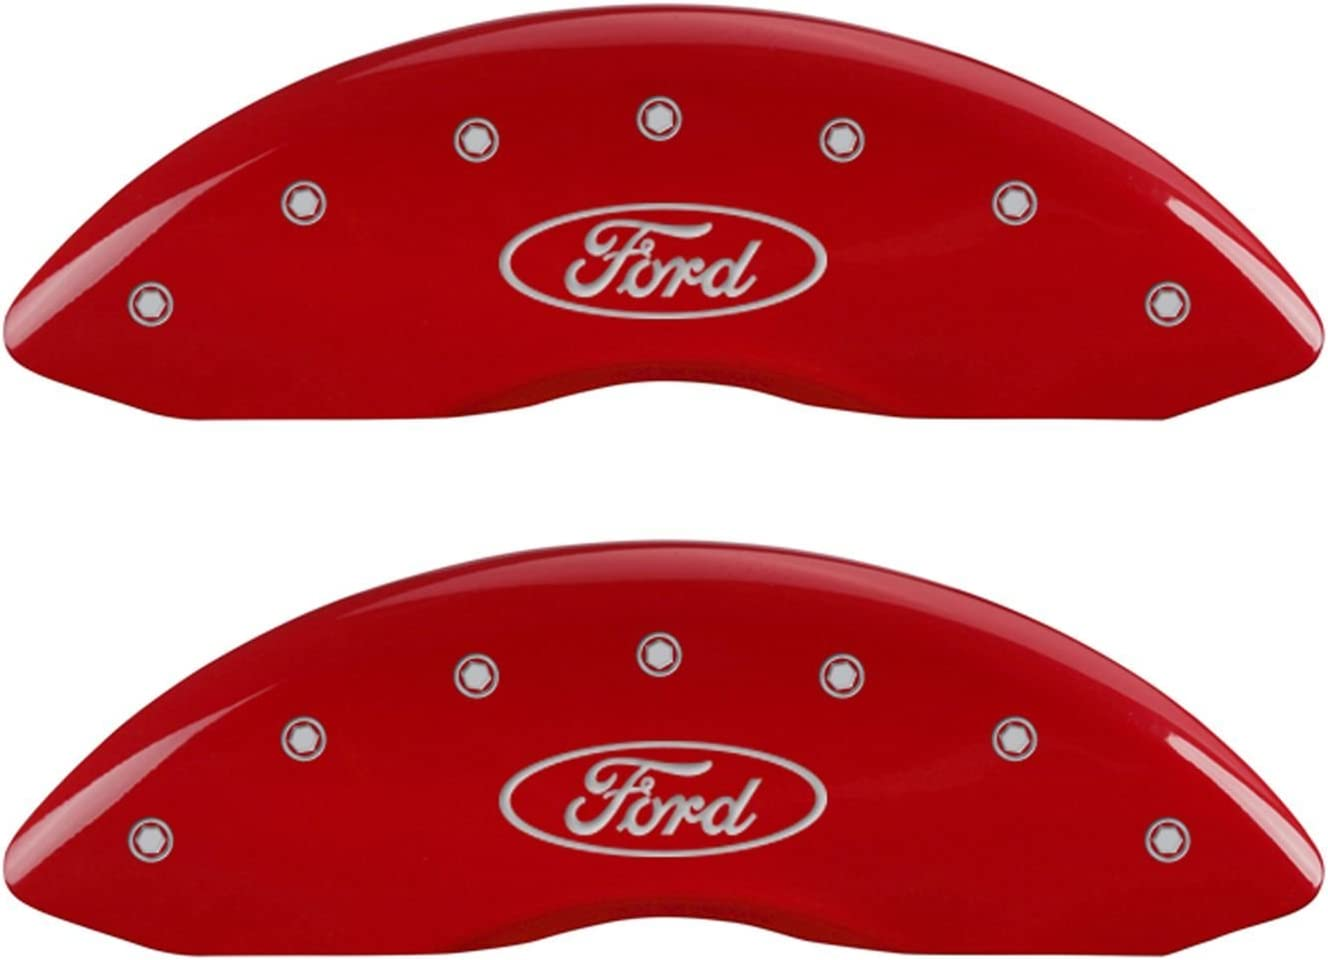 Super intense SALE MGP Caliper Covers 10239SFRDRD Red Powder 67% OFF of fixed price Coat Front Finish and